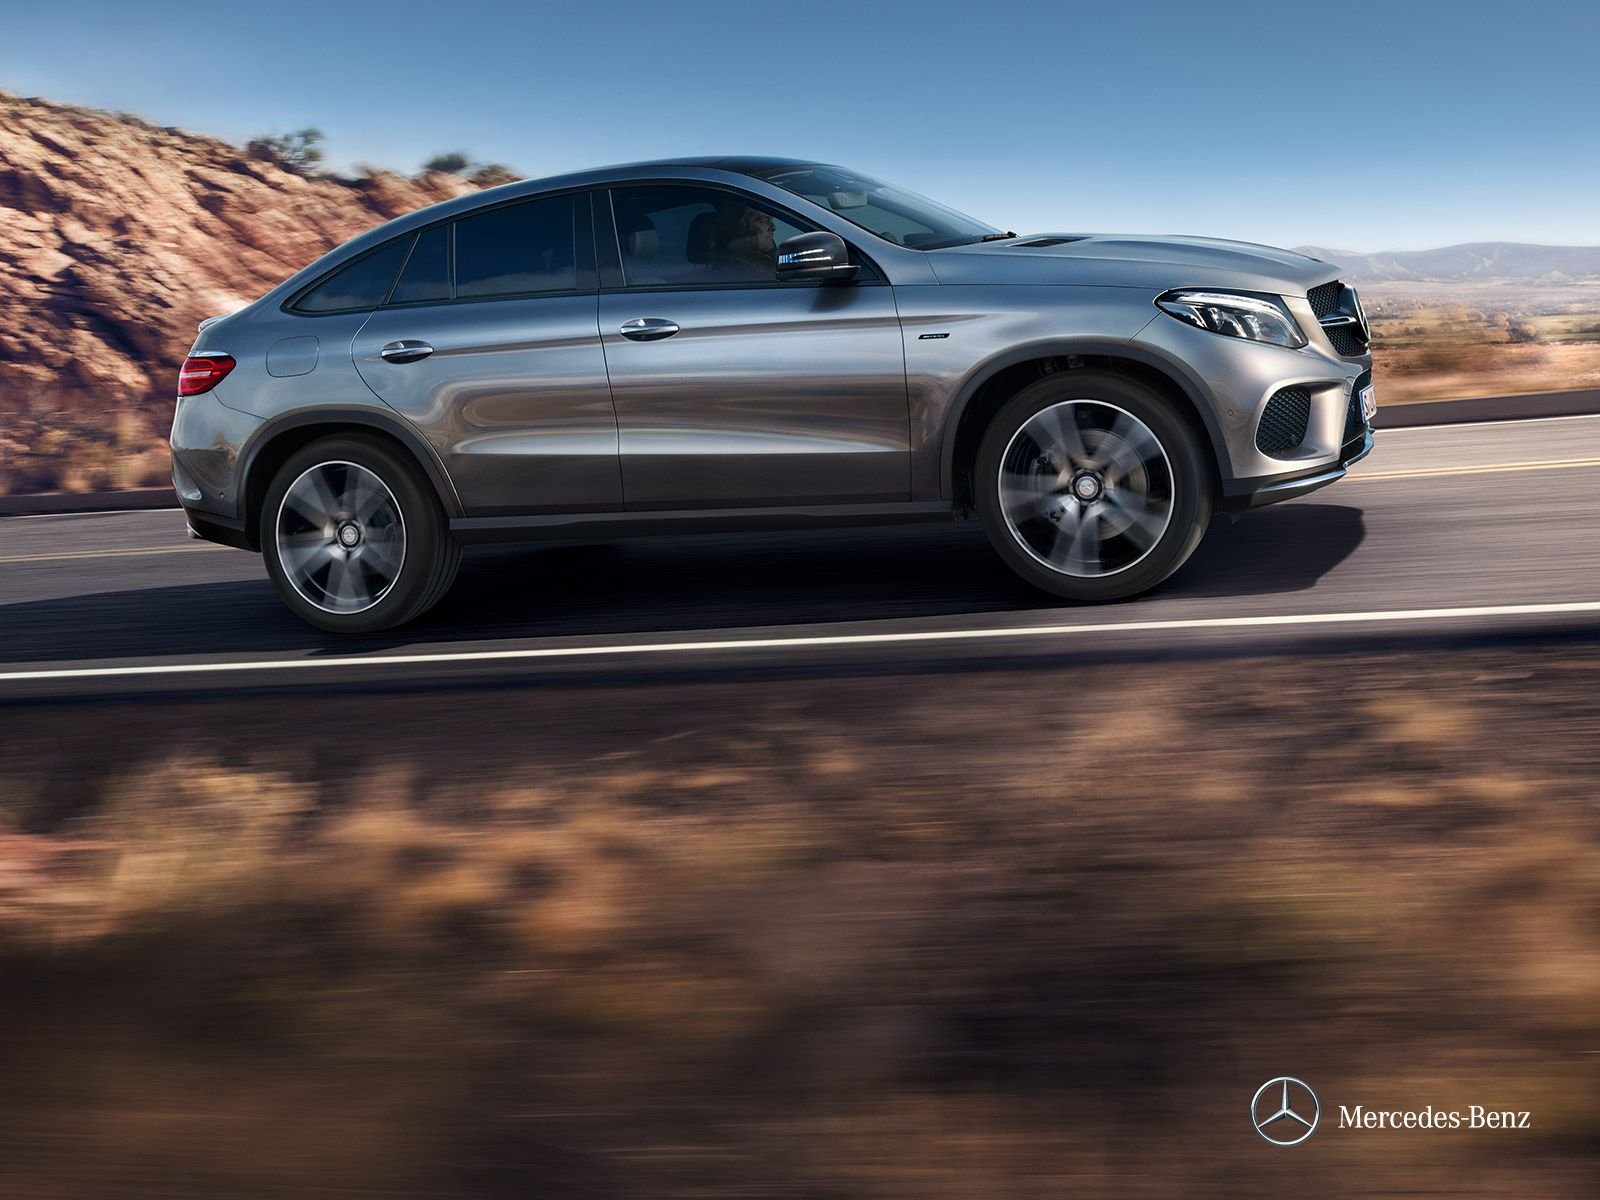 The new Mercedes Benz GLE Coupé seems to be a BMW X6 copy but it looks great the AMG version looks awesome